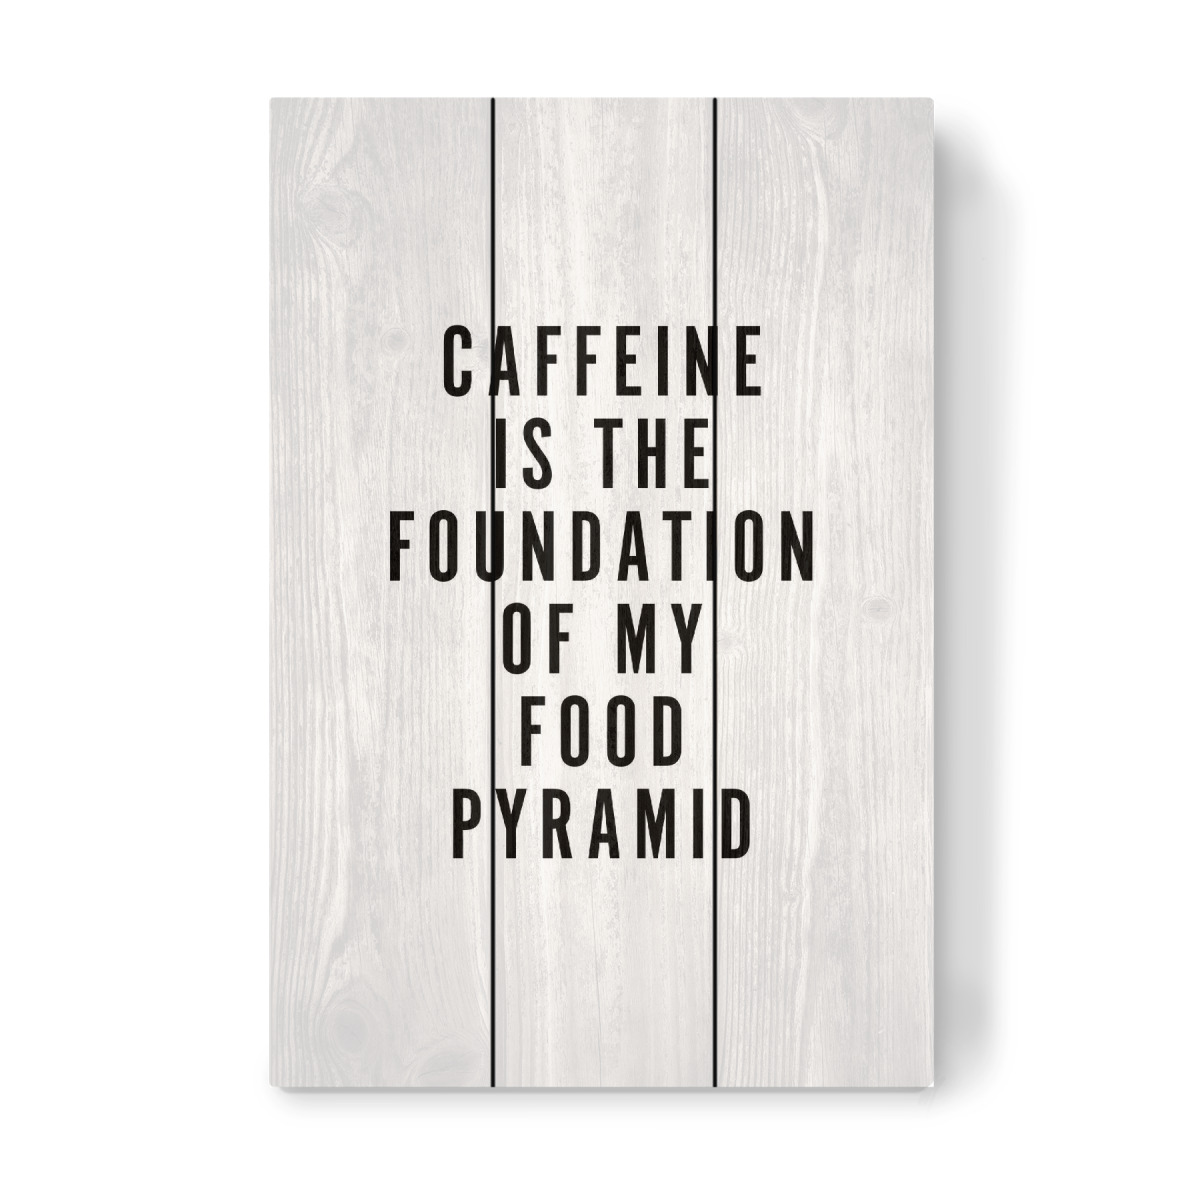 Purchase the Caffeine Foundation Food Pyramid as a Pine Wood at